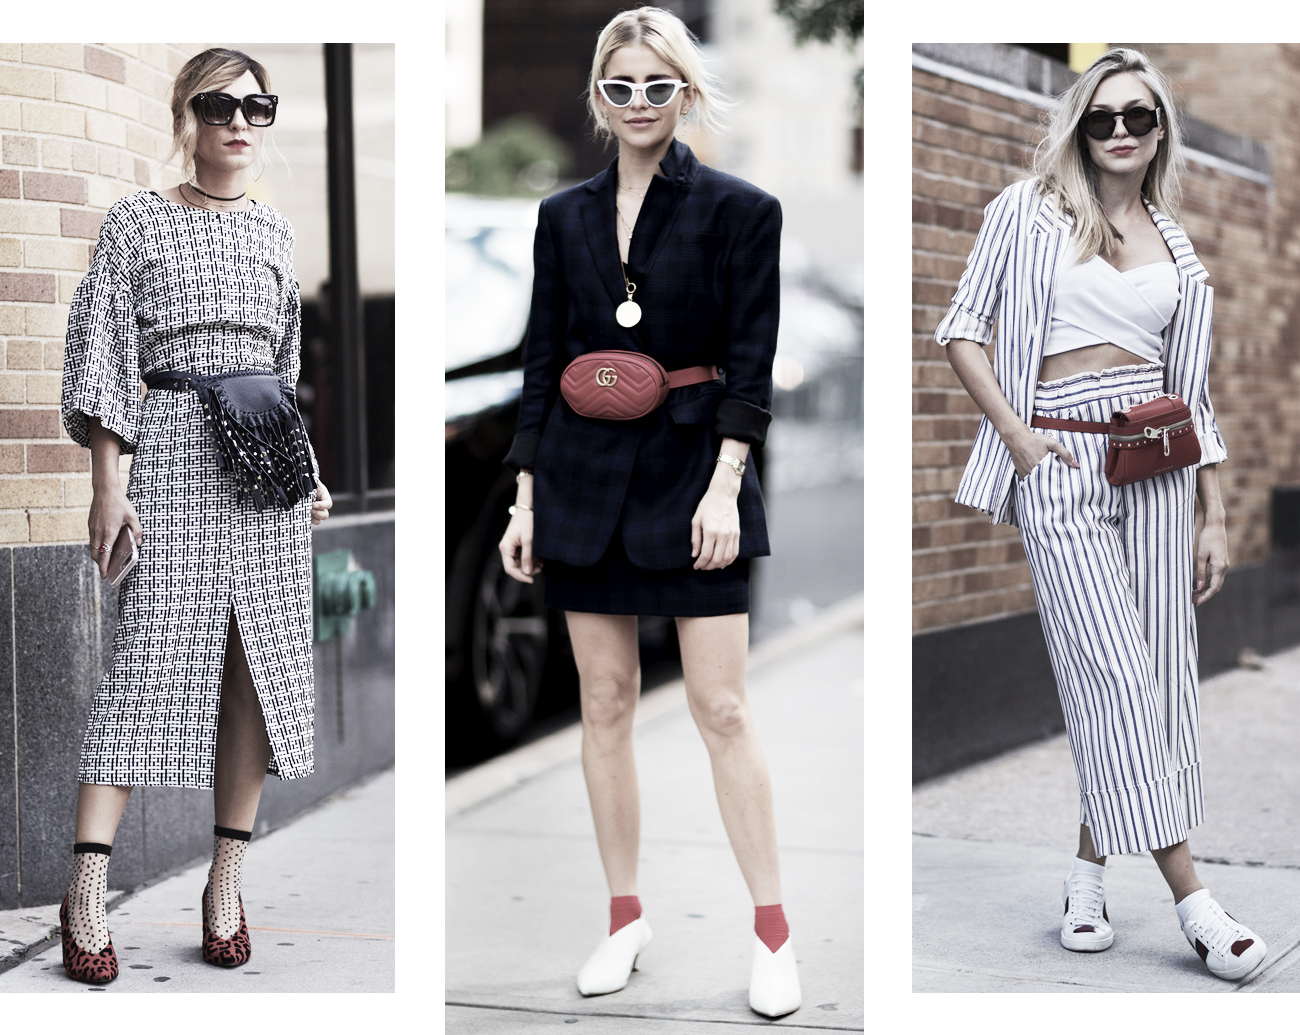 DISTRICT F - NEW YORK STREET STYLE SS18 belt bags 2 trend